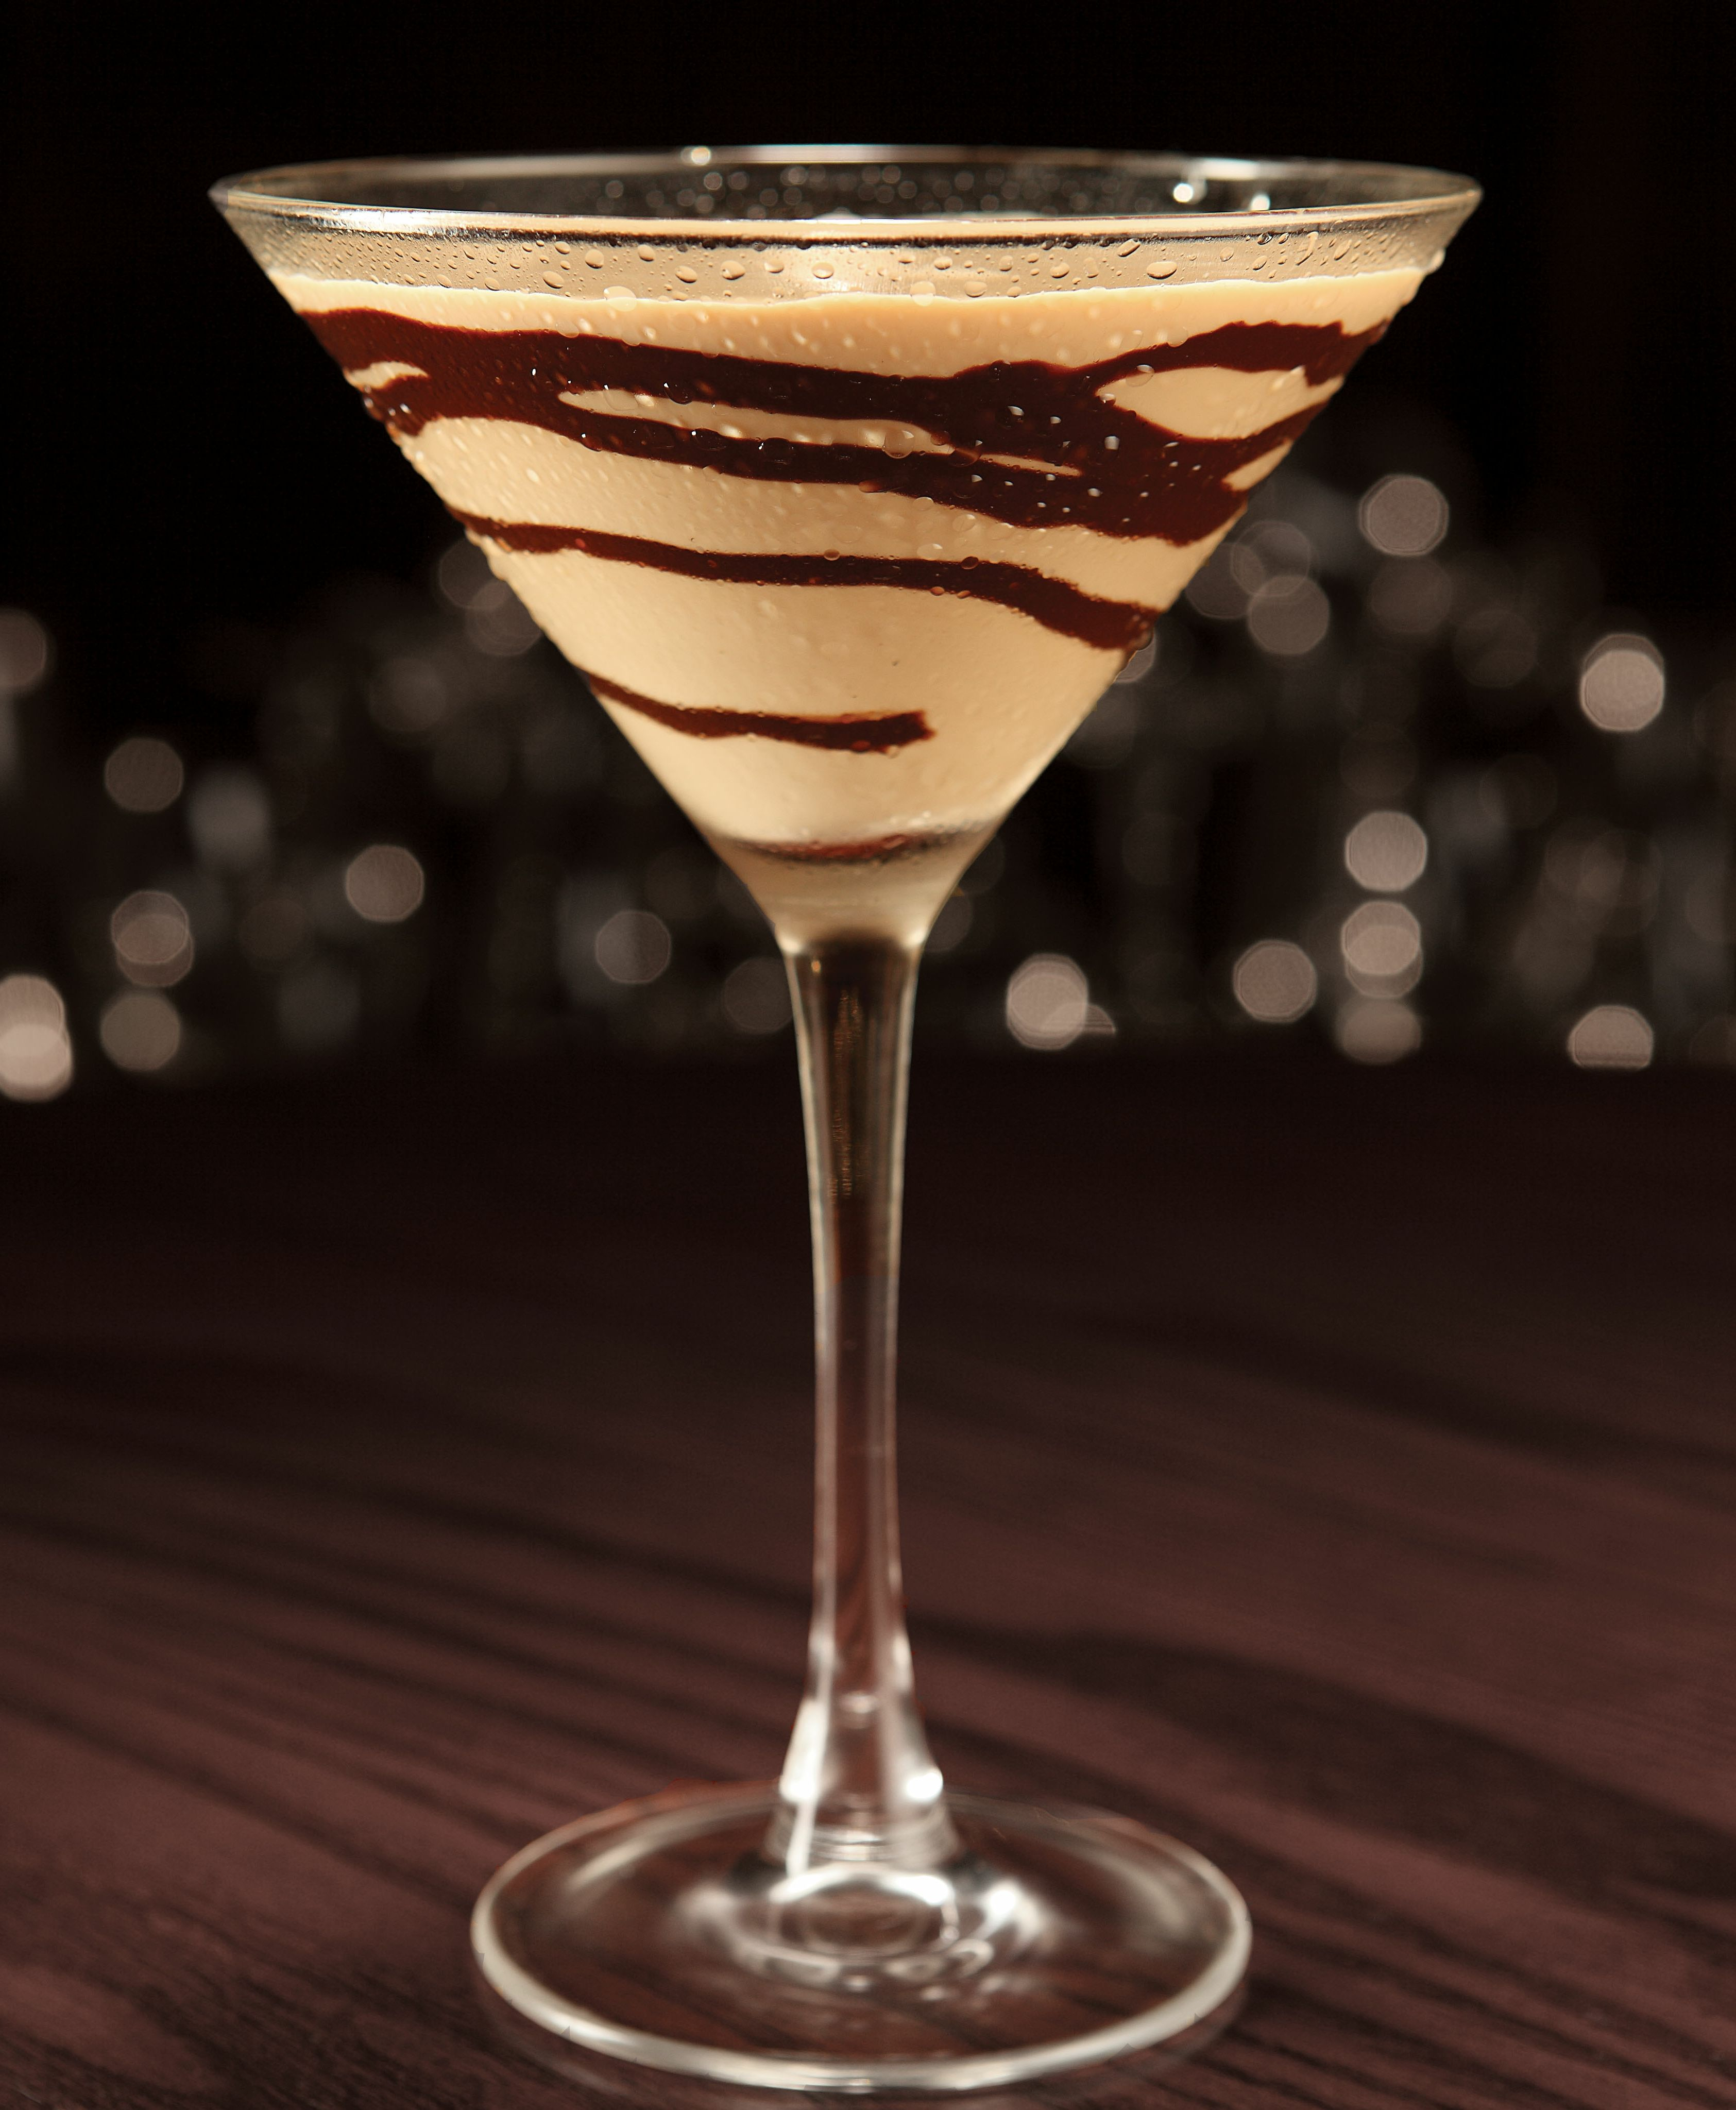 landslide martini | Cooking | Pinterest | Chocolate drizzle ...